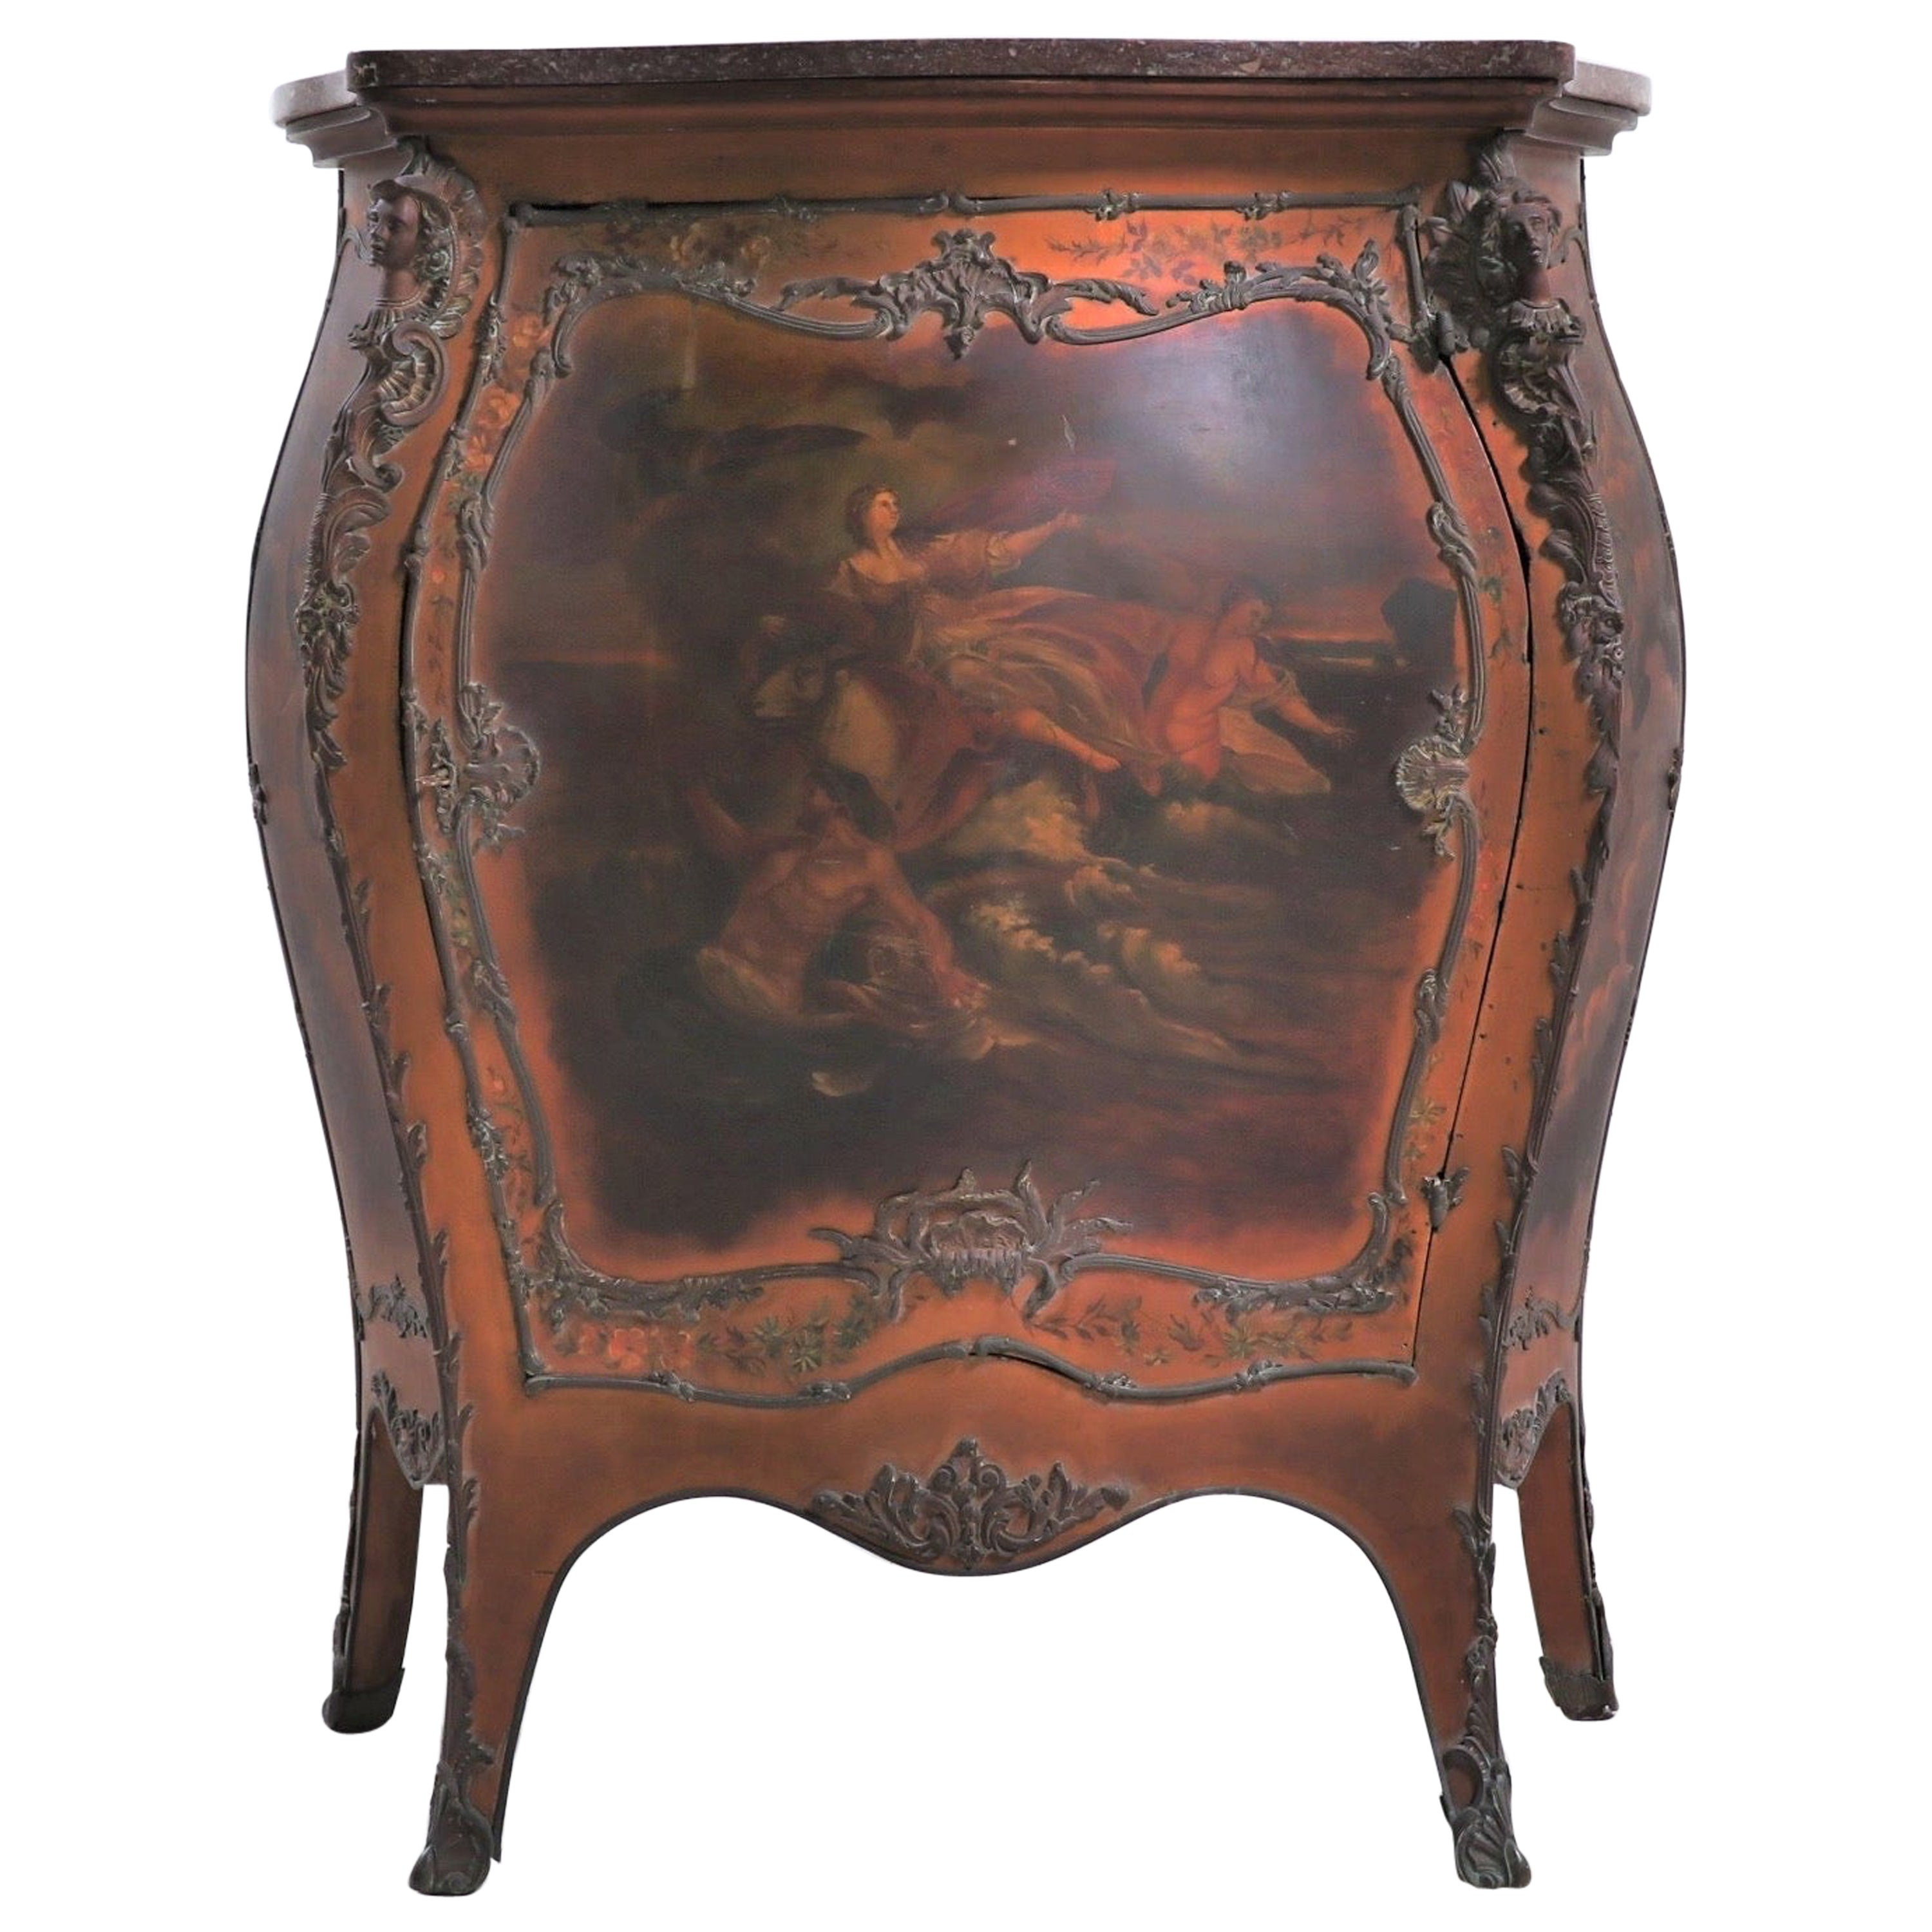 French 19th Century Louis XV-Style Bombay Chest